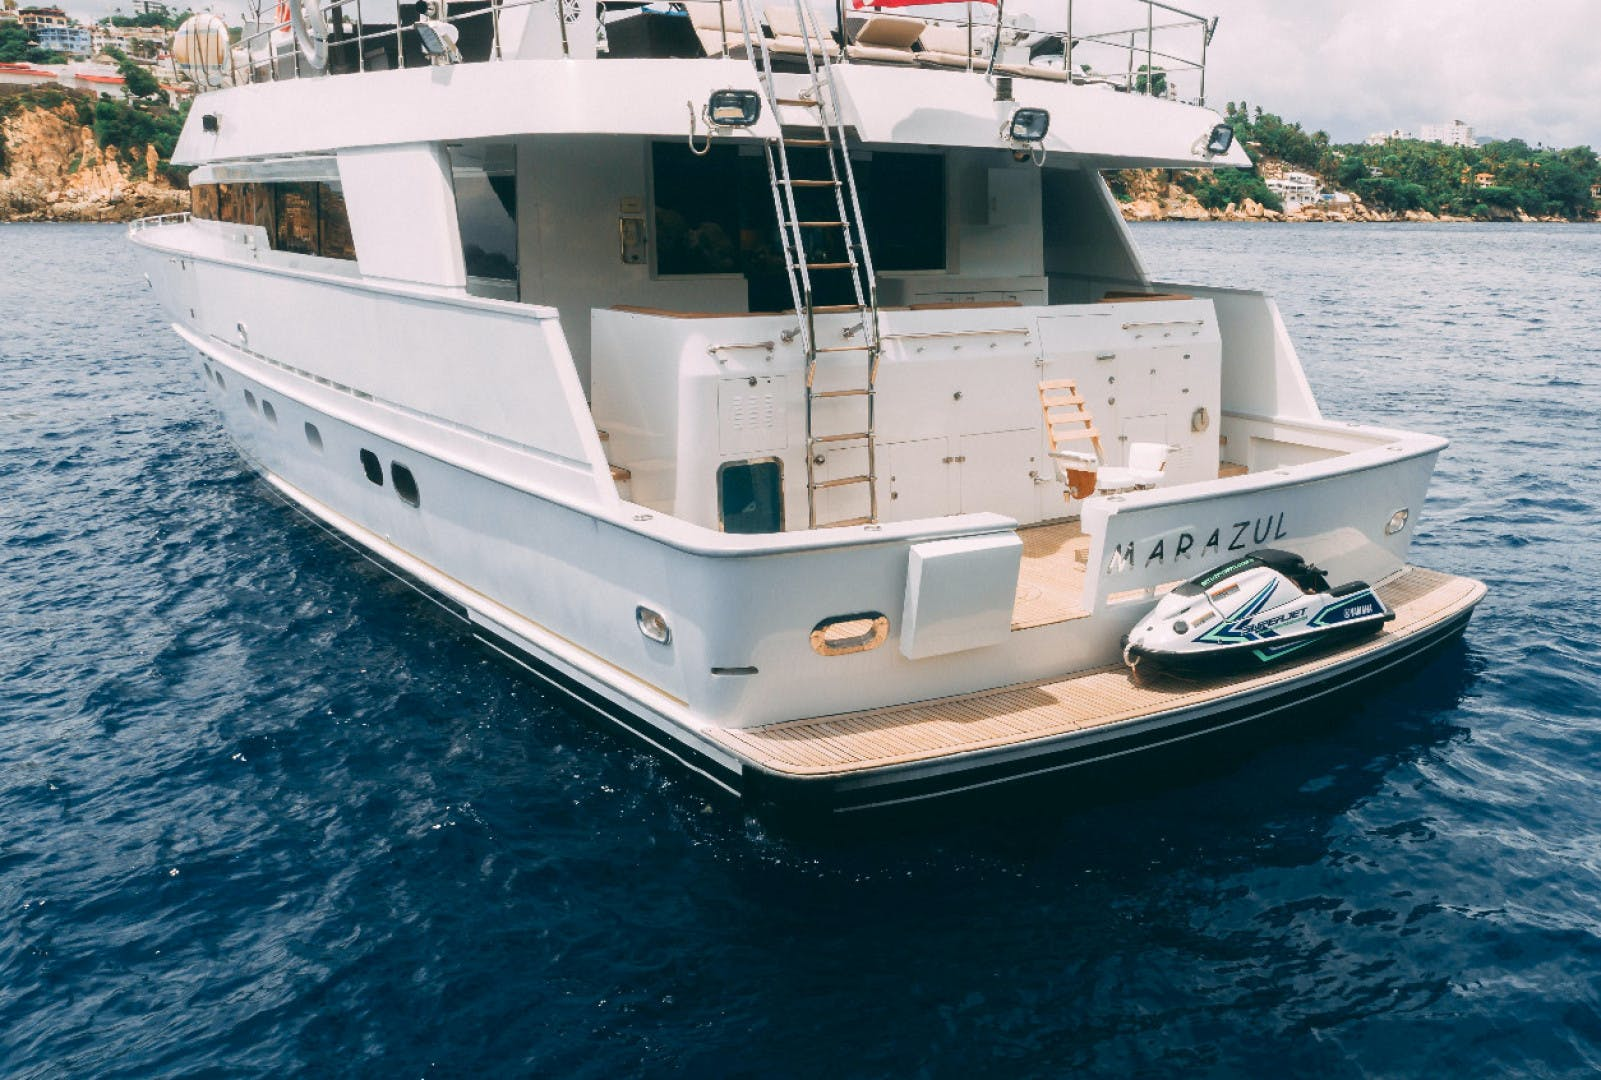 1986 Poole Boat Company 98' Raised Pilothouse with Cockpit Marazul | Picture 5 of 49